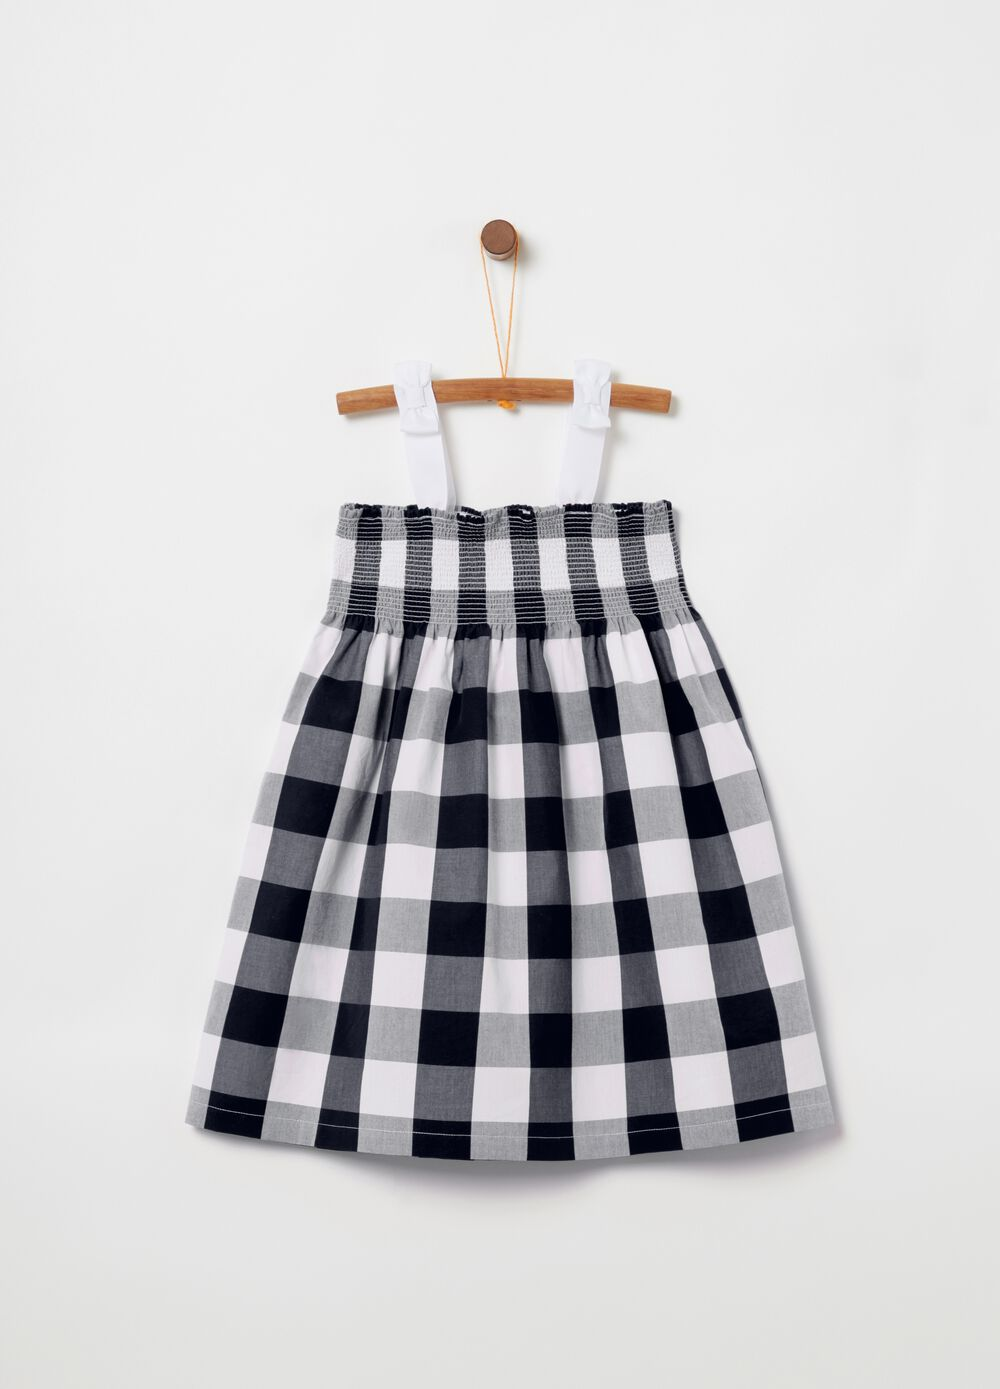 e53b8a4c8 Girls' 3-10 years Clothes online, Collection 2019 | OVS